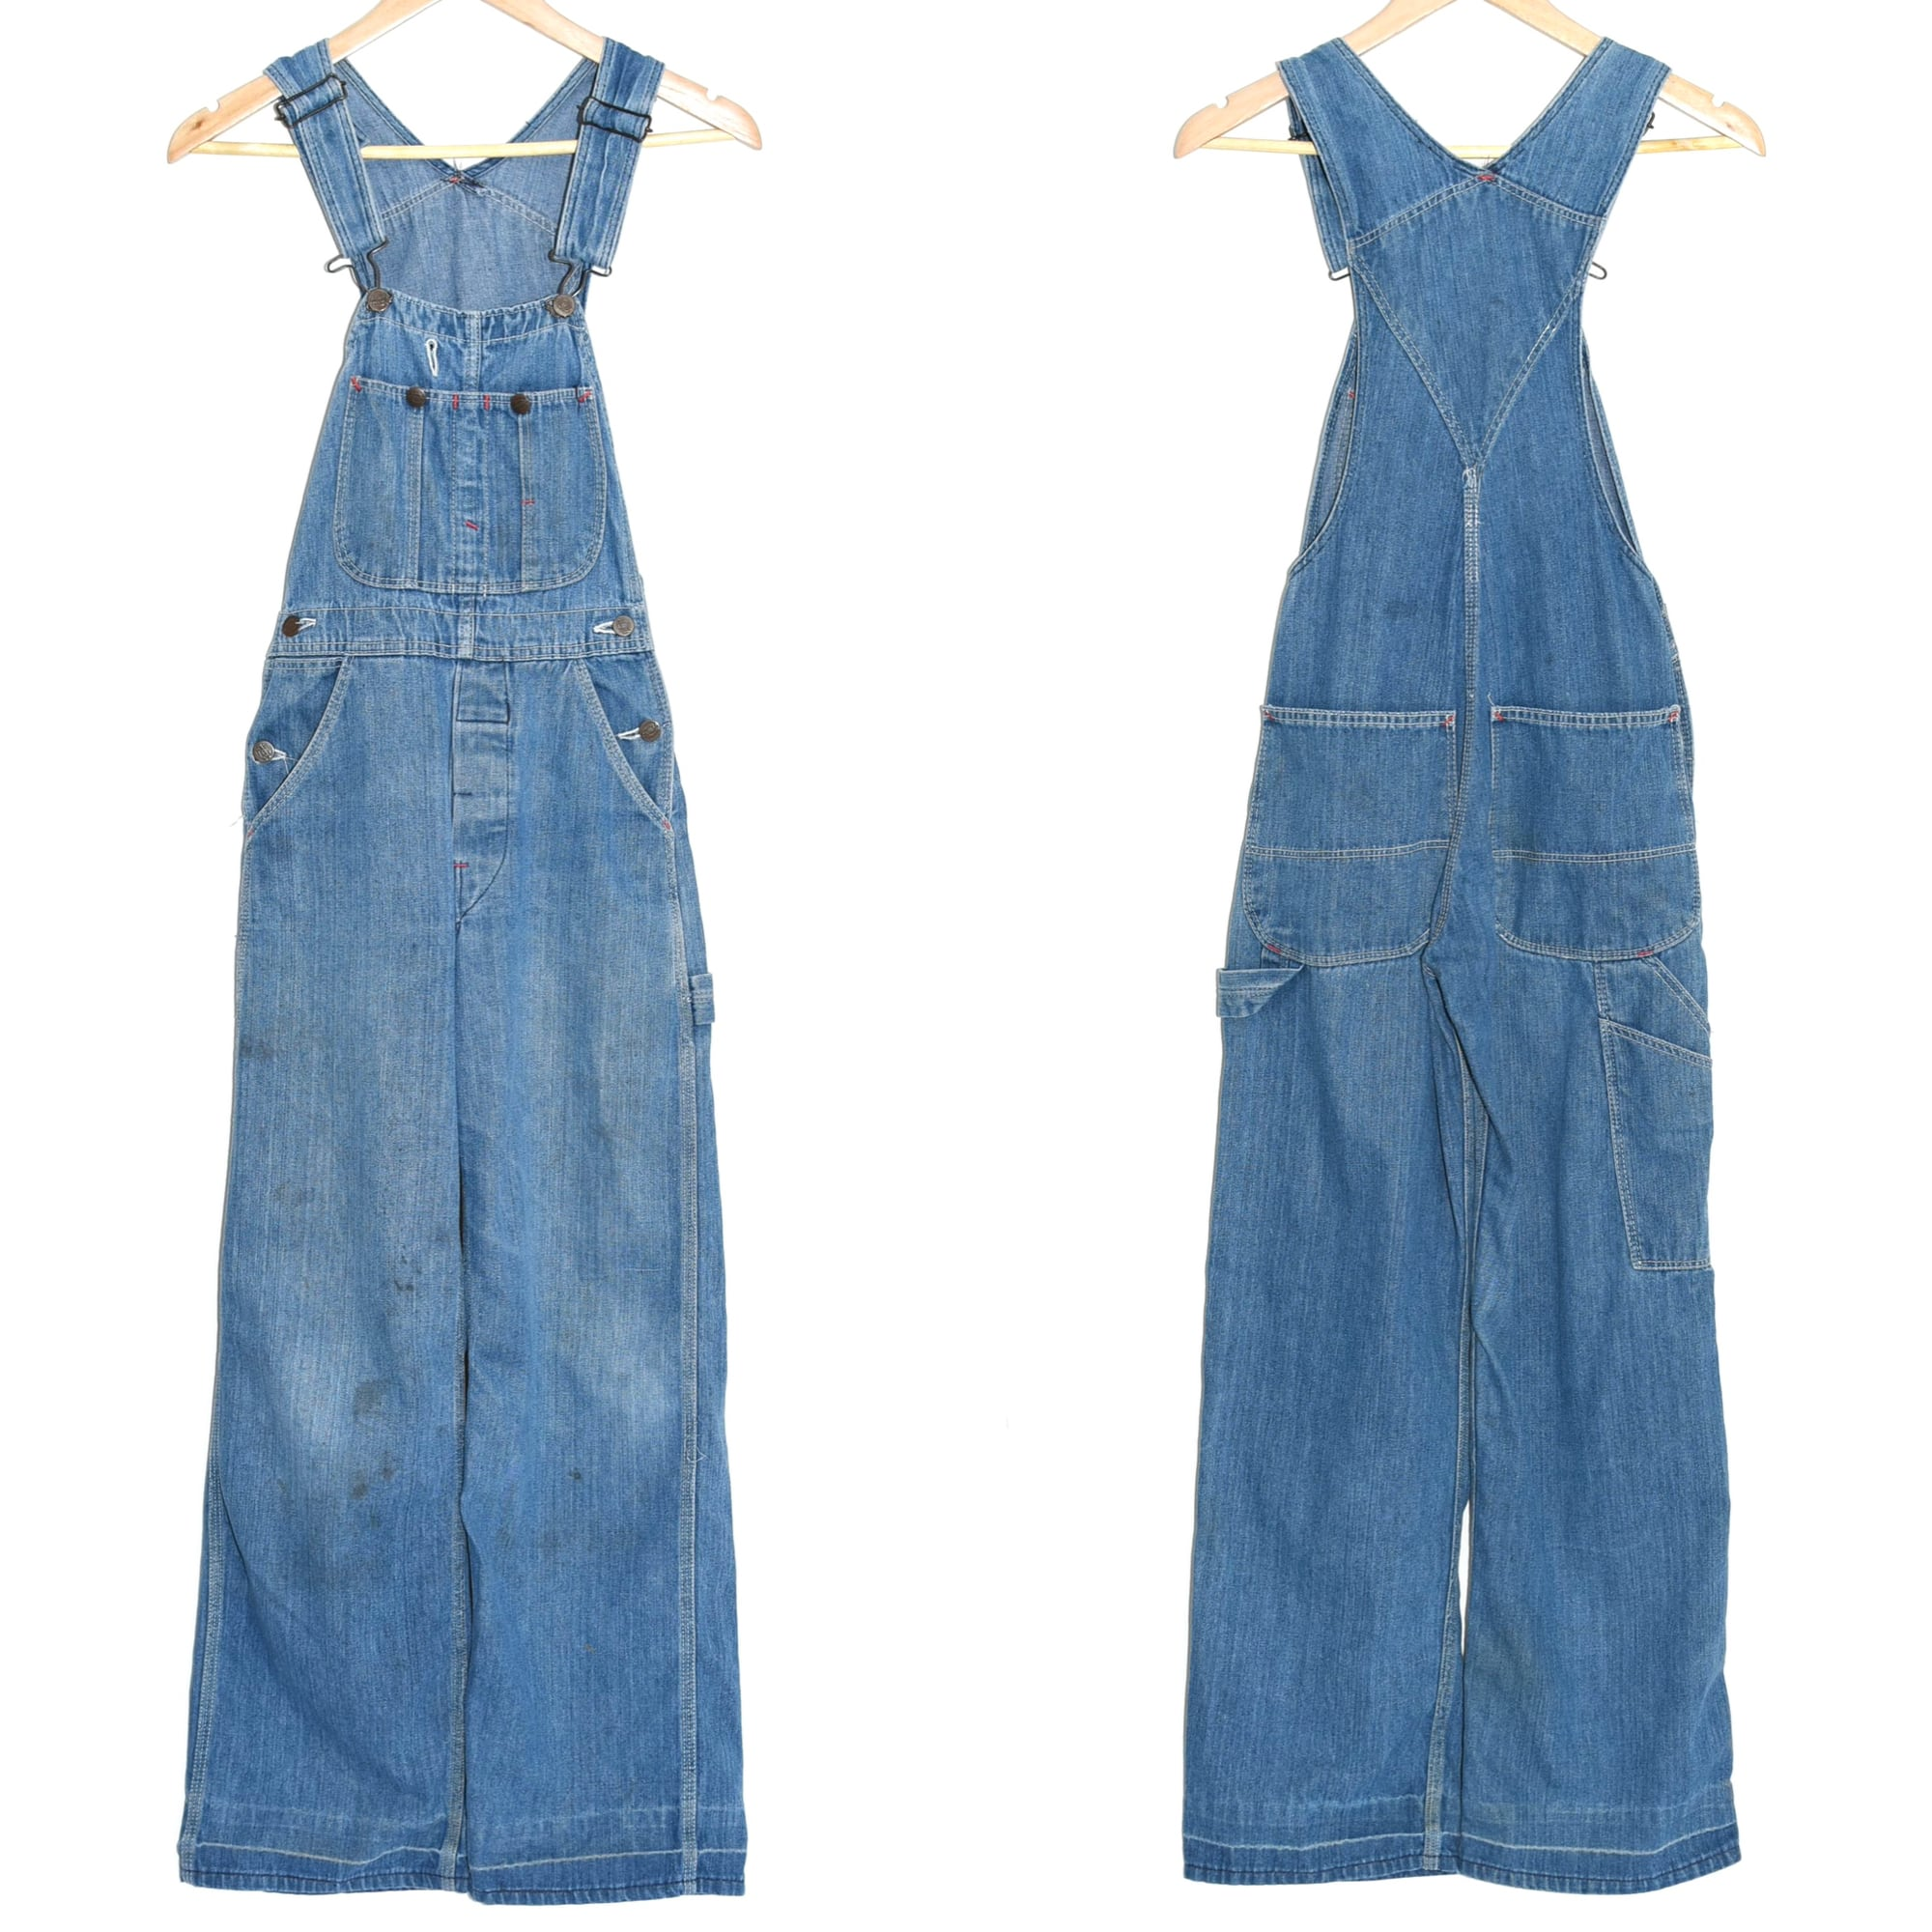 00's Dickies denim overalls Made in MEXICO